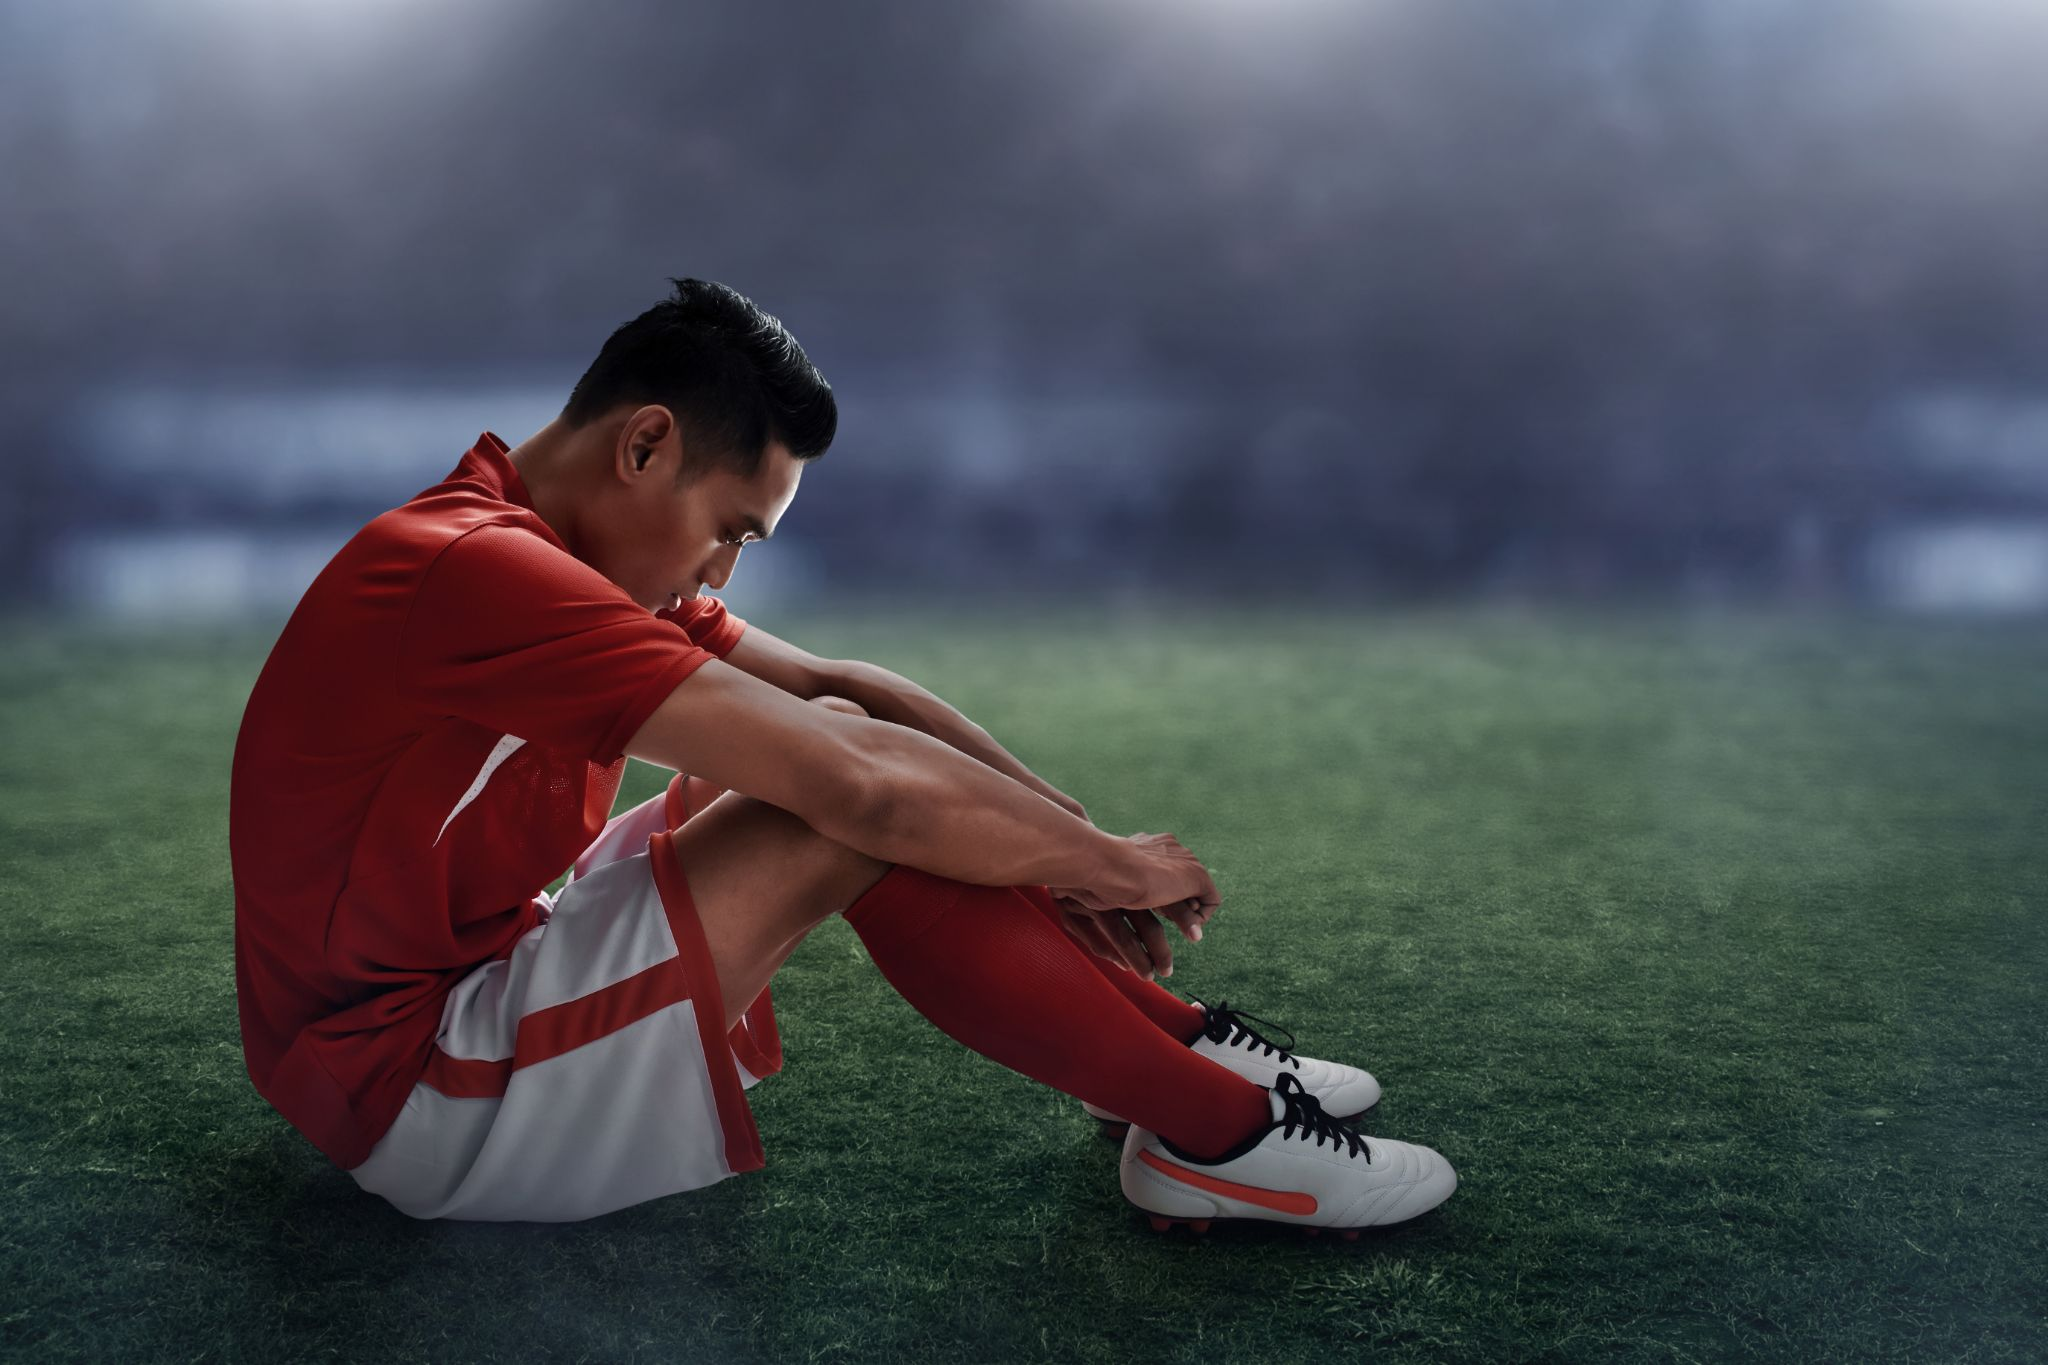 Soccer player lose